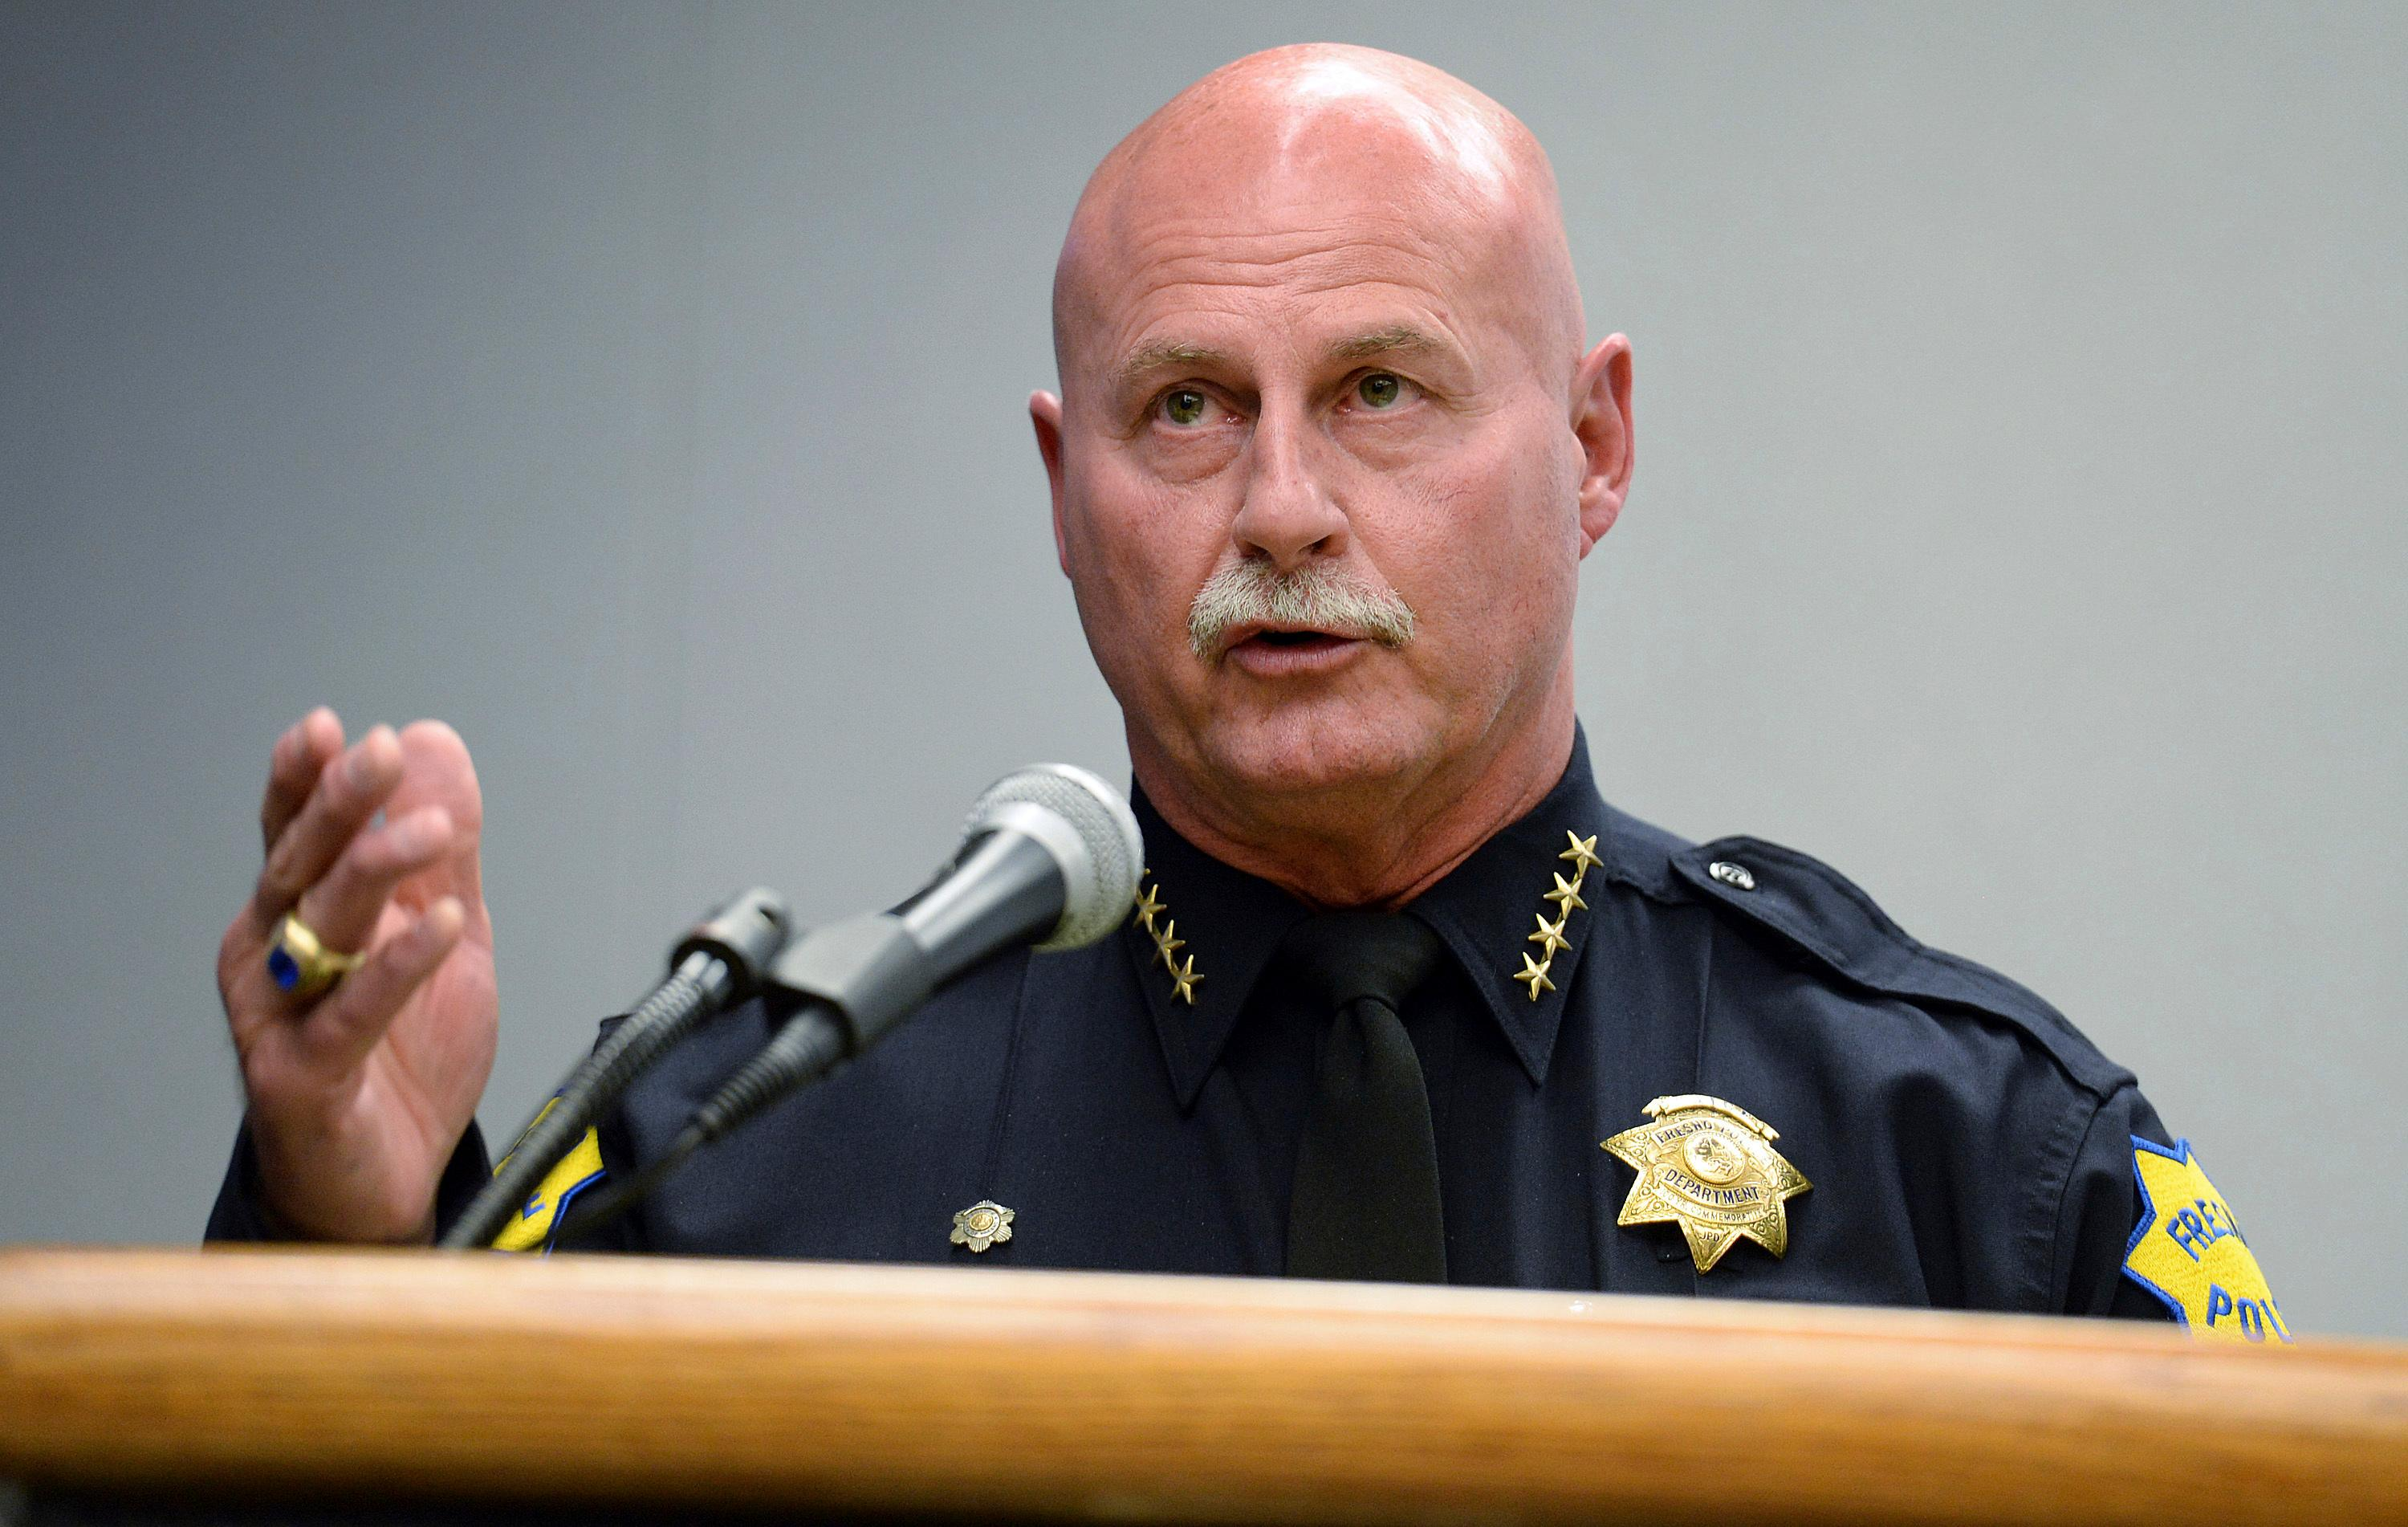 Fresno Police Chief Jerry Dyer holds a news conference to go over details of Tuesday's triple homicide shooting in Fresno, Calif., at the Fresno Police Department on Wednesday, April 19, 2017. The black gunman suspected of killing three white men in a racially motivated attack in Fresno was proud of what he had done and laughed many times as he explained his actions in interviews with police, authorities said Wednesday. (Craig Kohlruss/The Fresno Bee via AP)